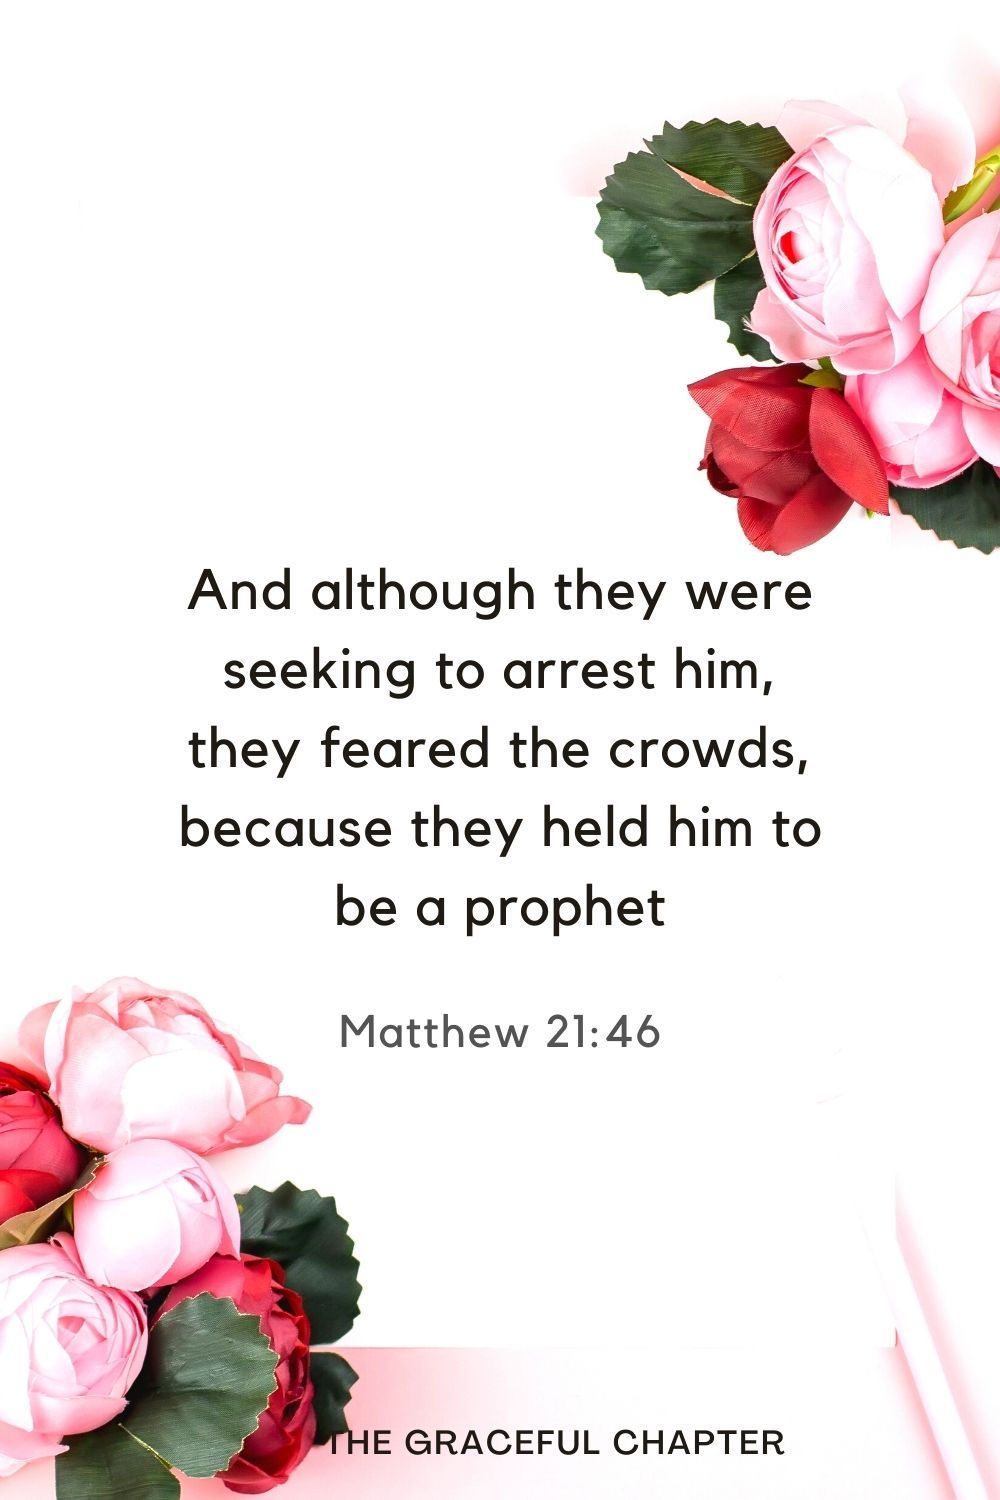 And although they were seeking to arrest him, they feared the crowds, because they held him to be a prophet Matthew 21:46